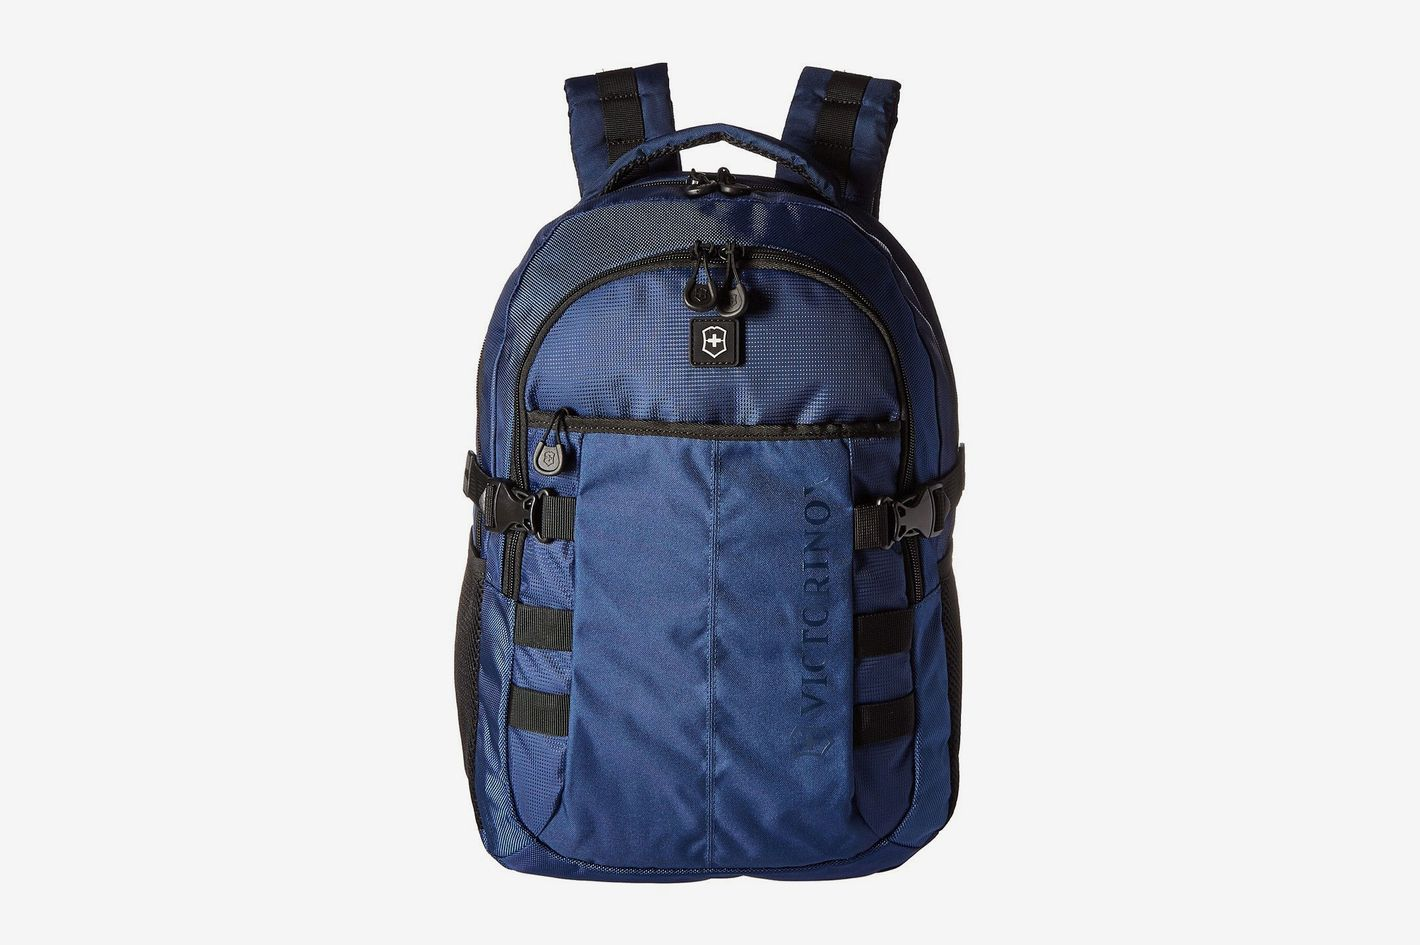 50dab2740e6 8 Best Backpacks for College Students 2018